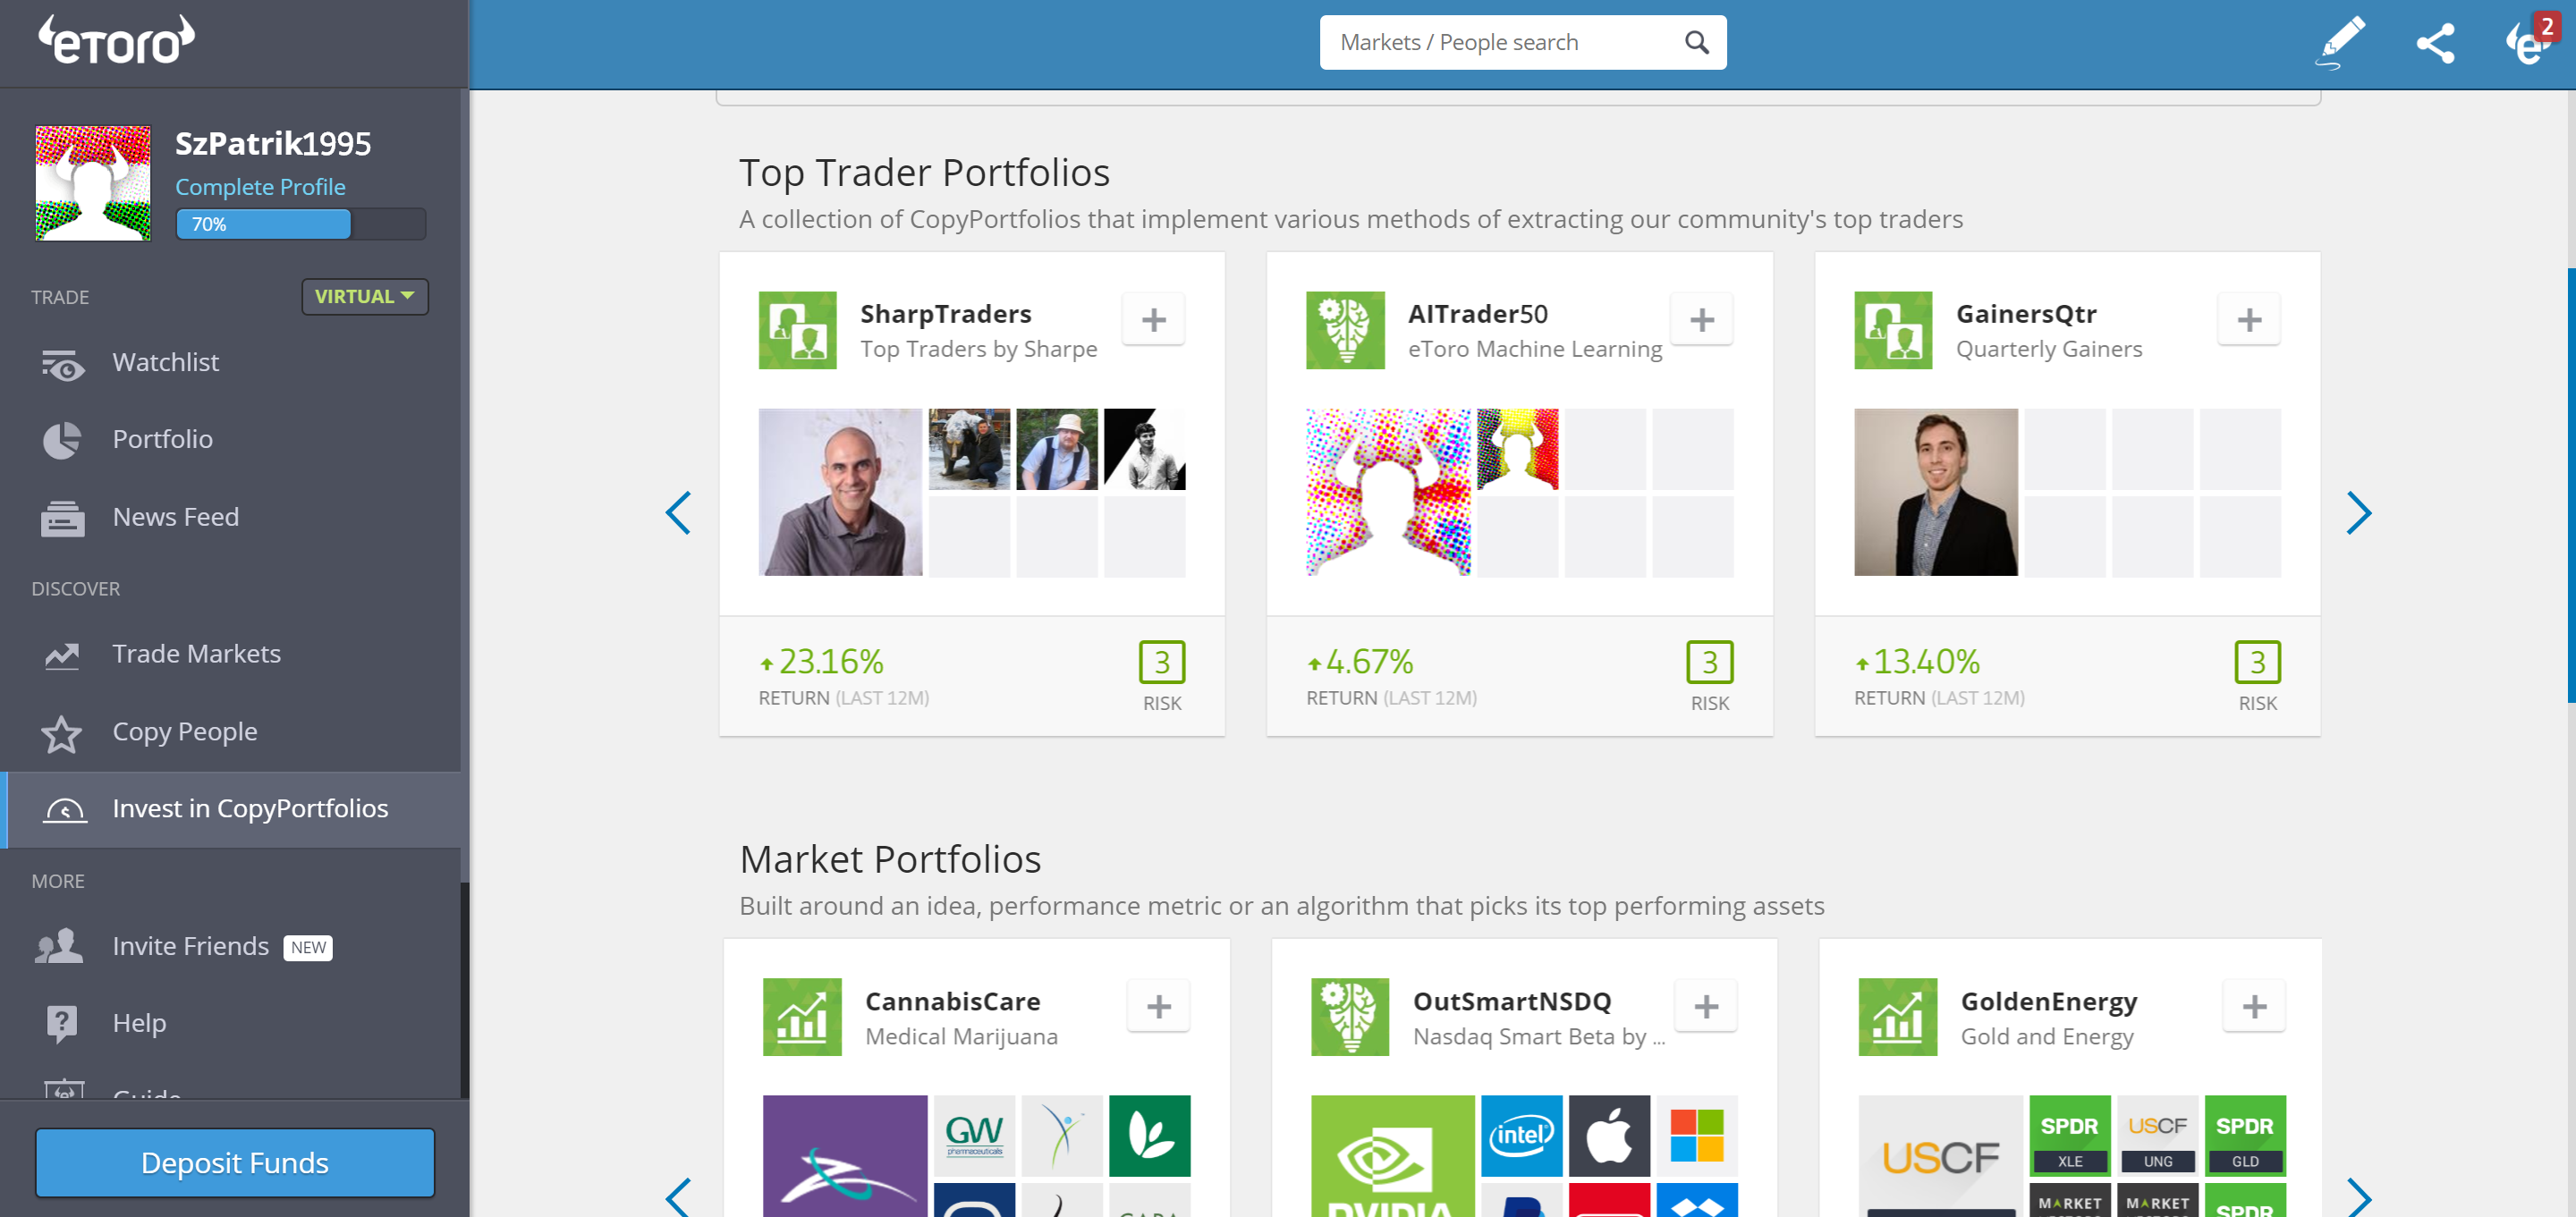 Etoro review - Markets and products - copy funds